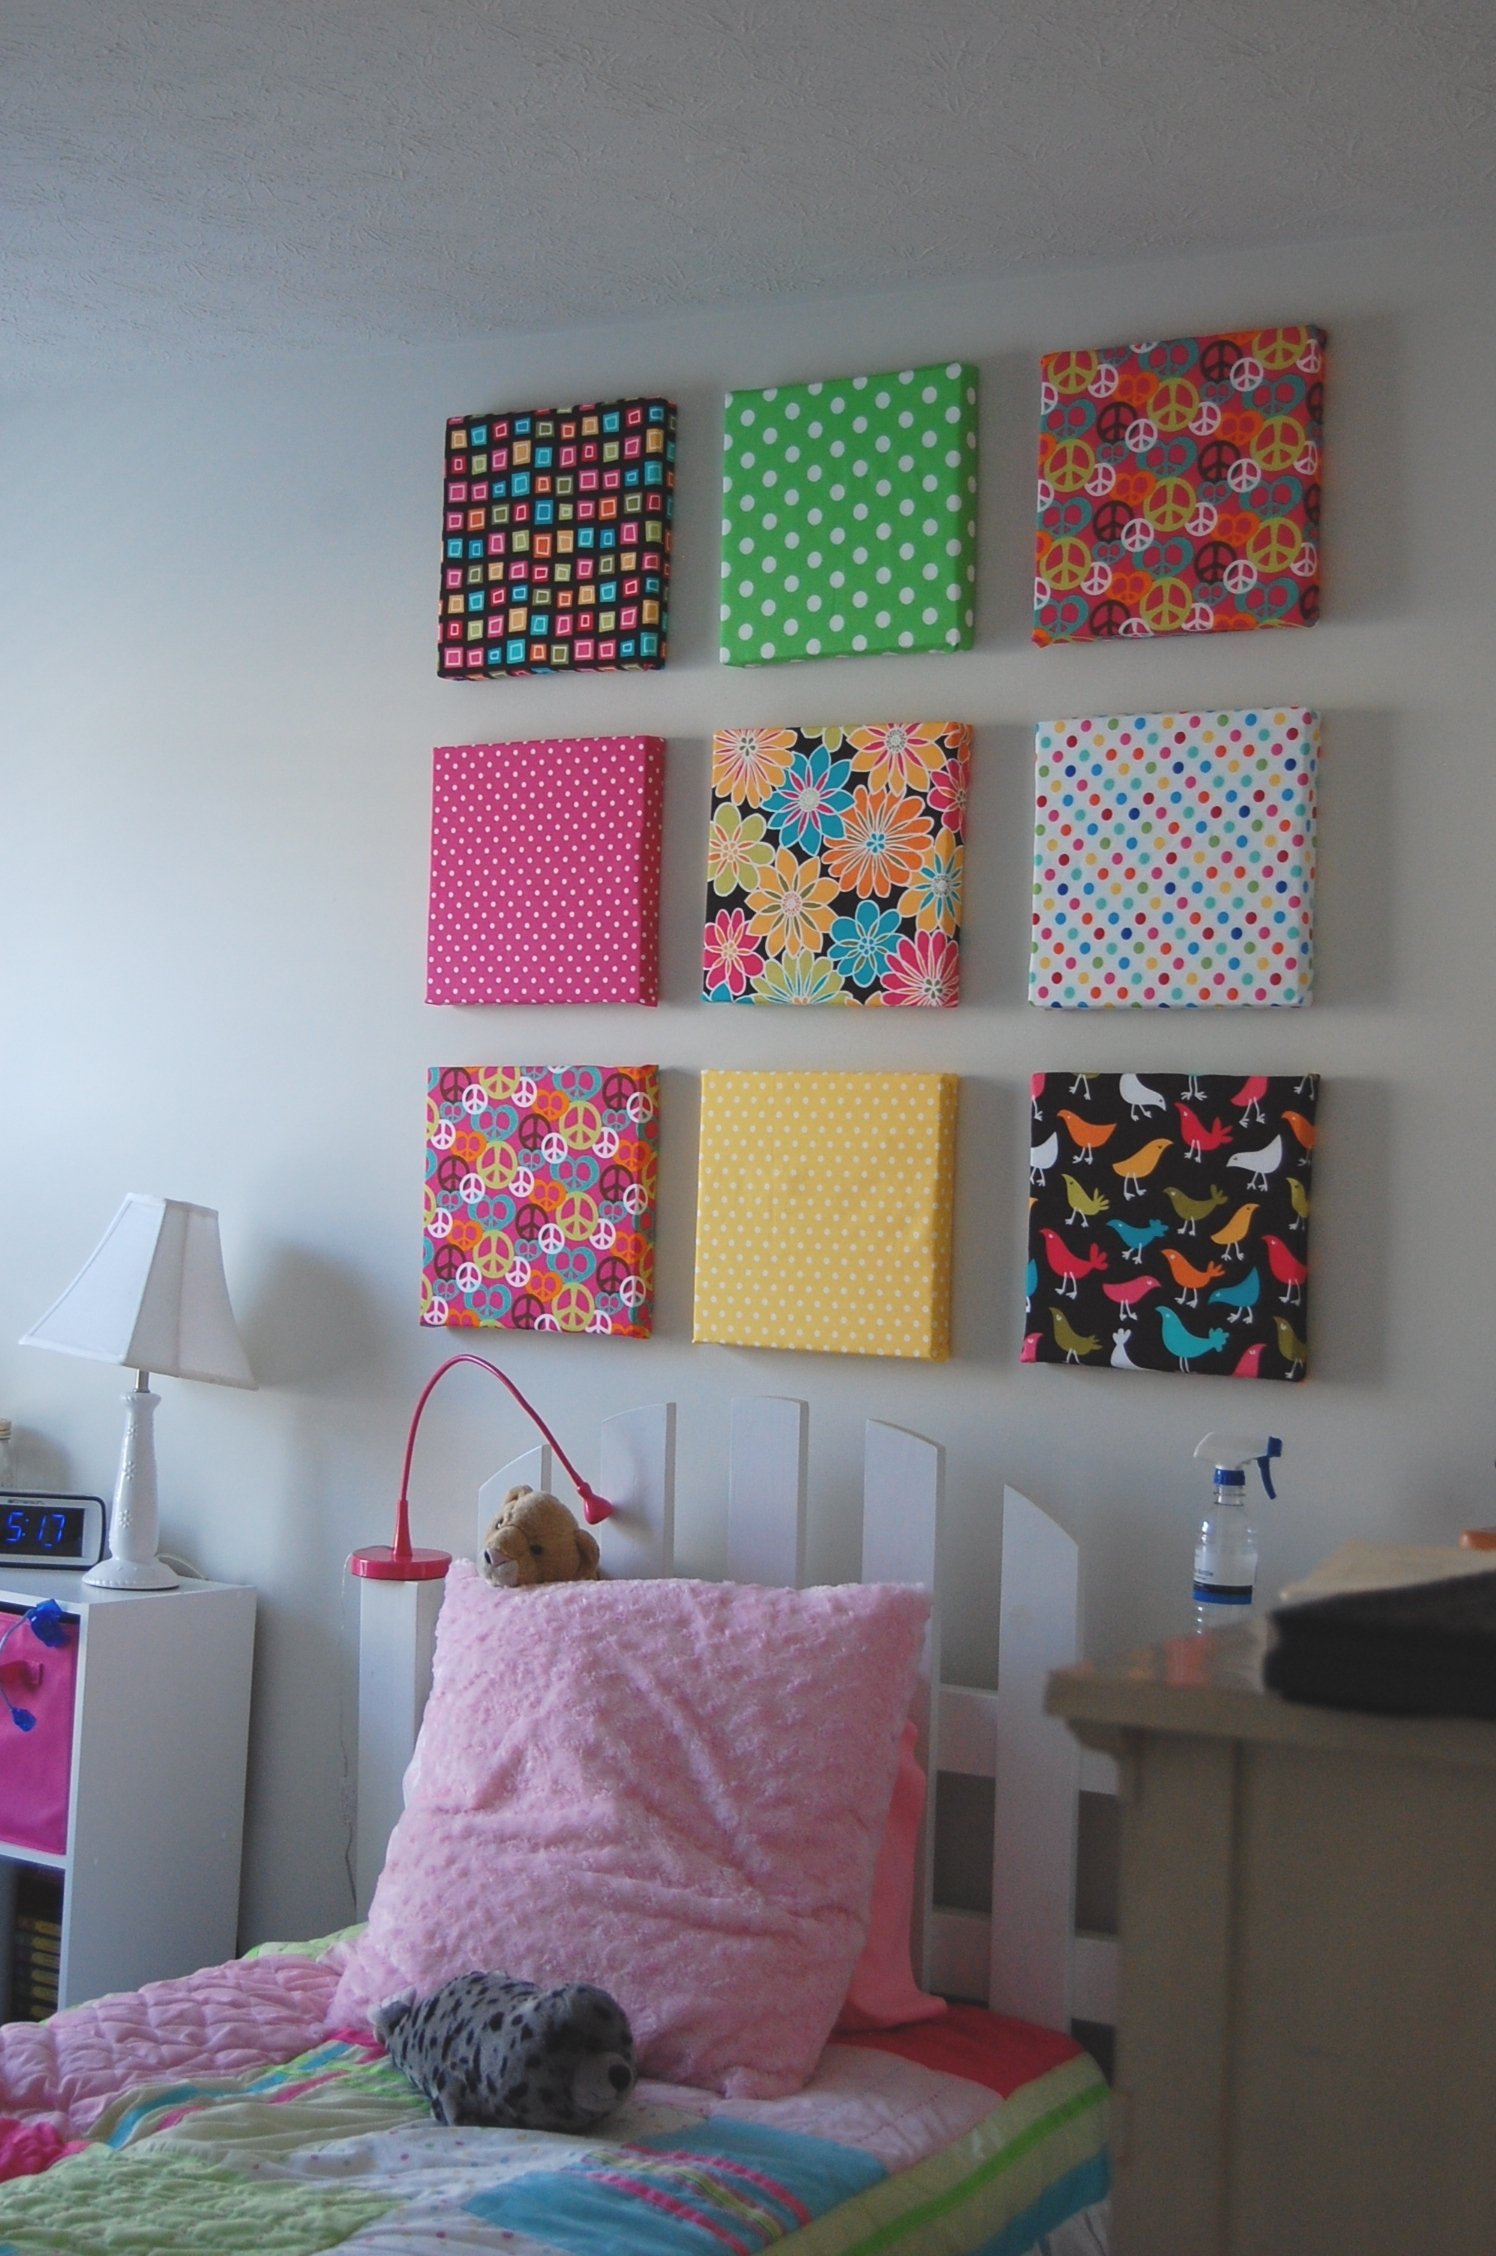 Finally Finished My Daughter's Room (View 13 of 15)